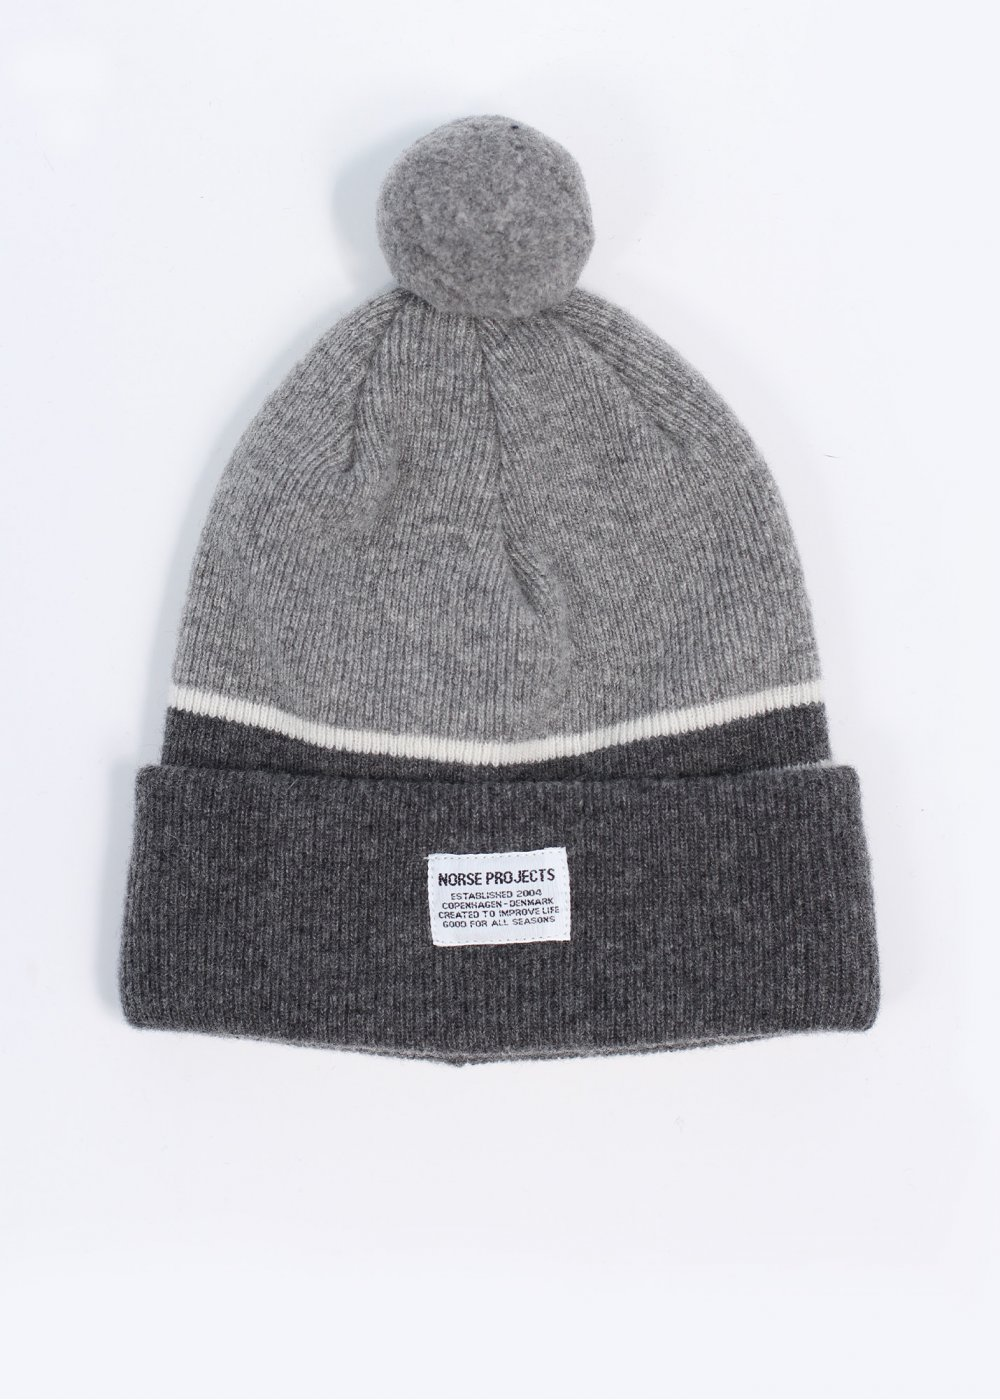 Norse Projects Borderline Lambswool Beanie - Grey 818b2441636